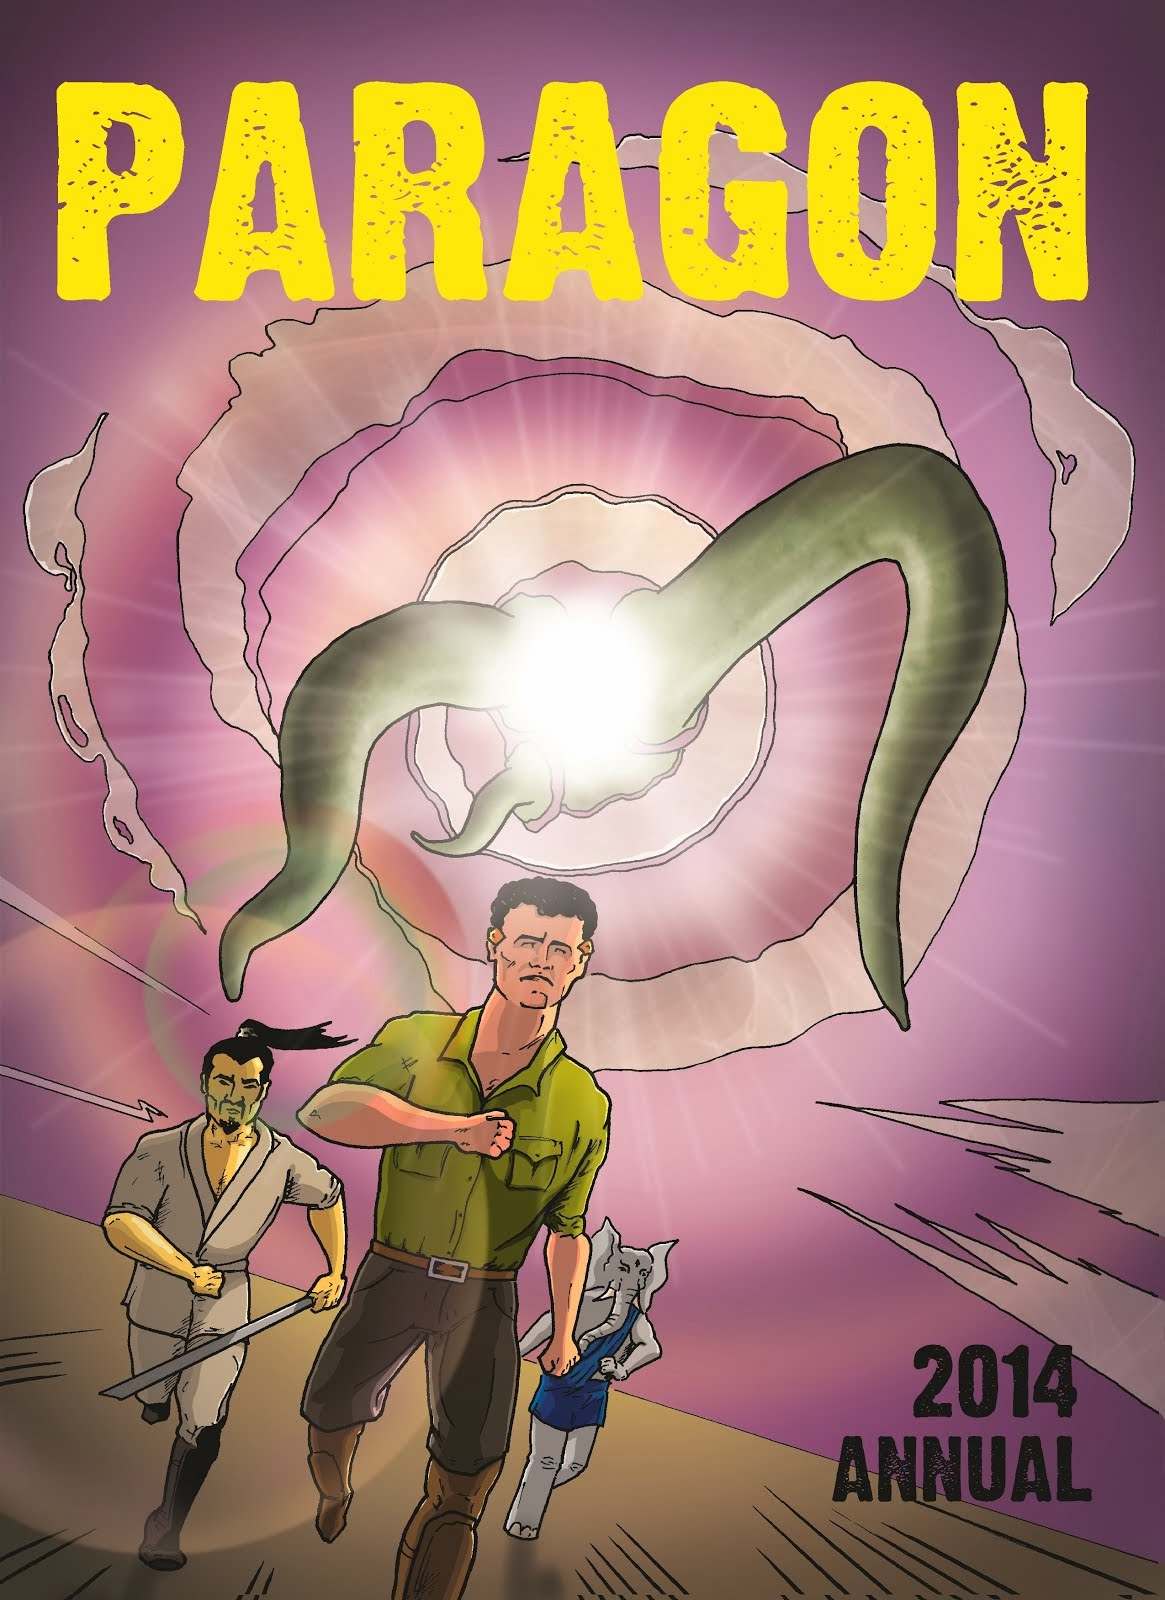 The PARAGON Annual 2014